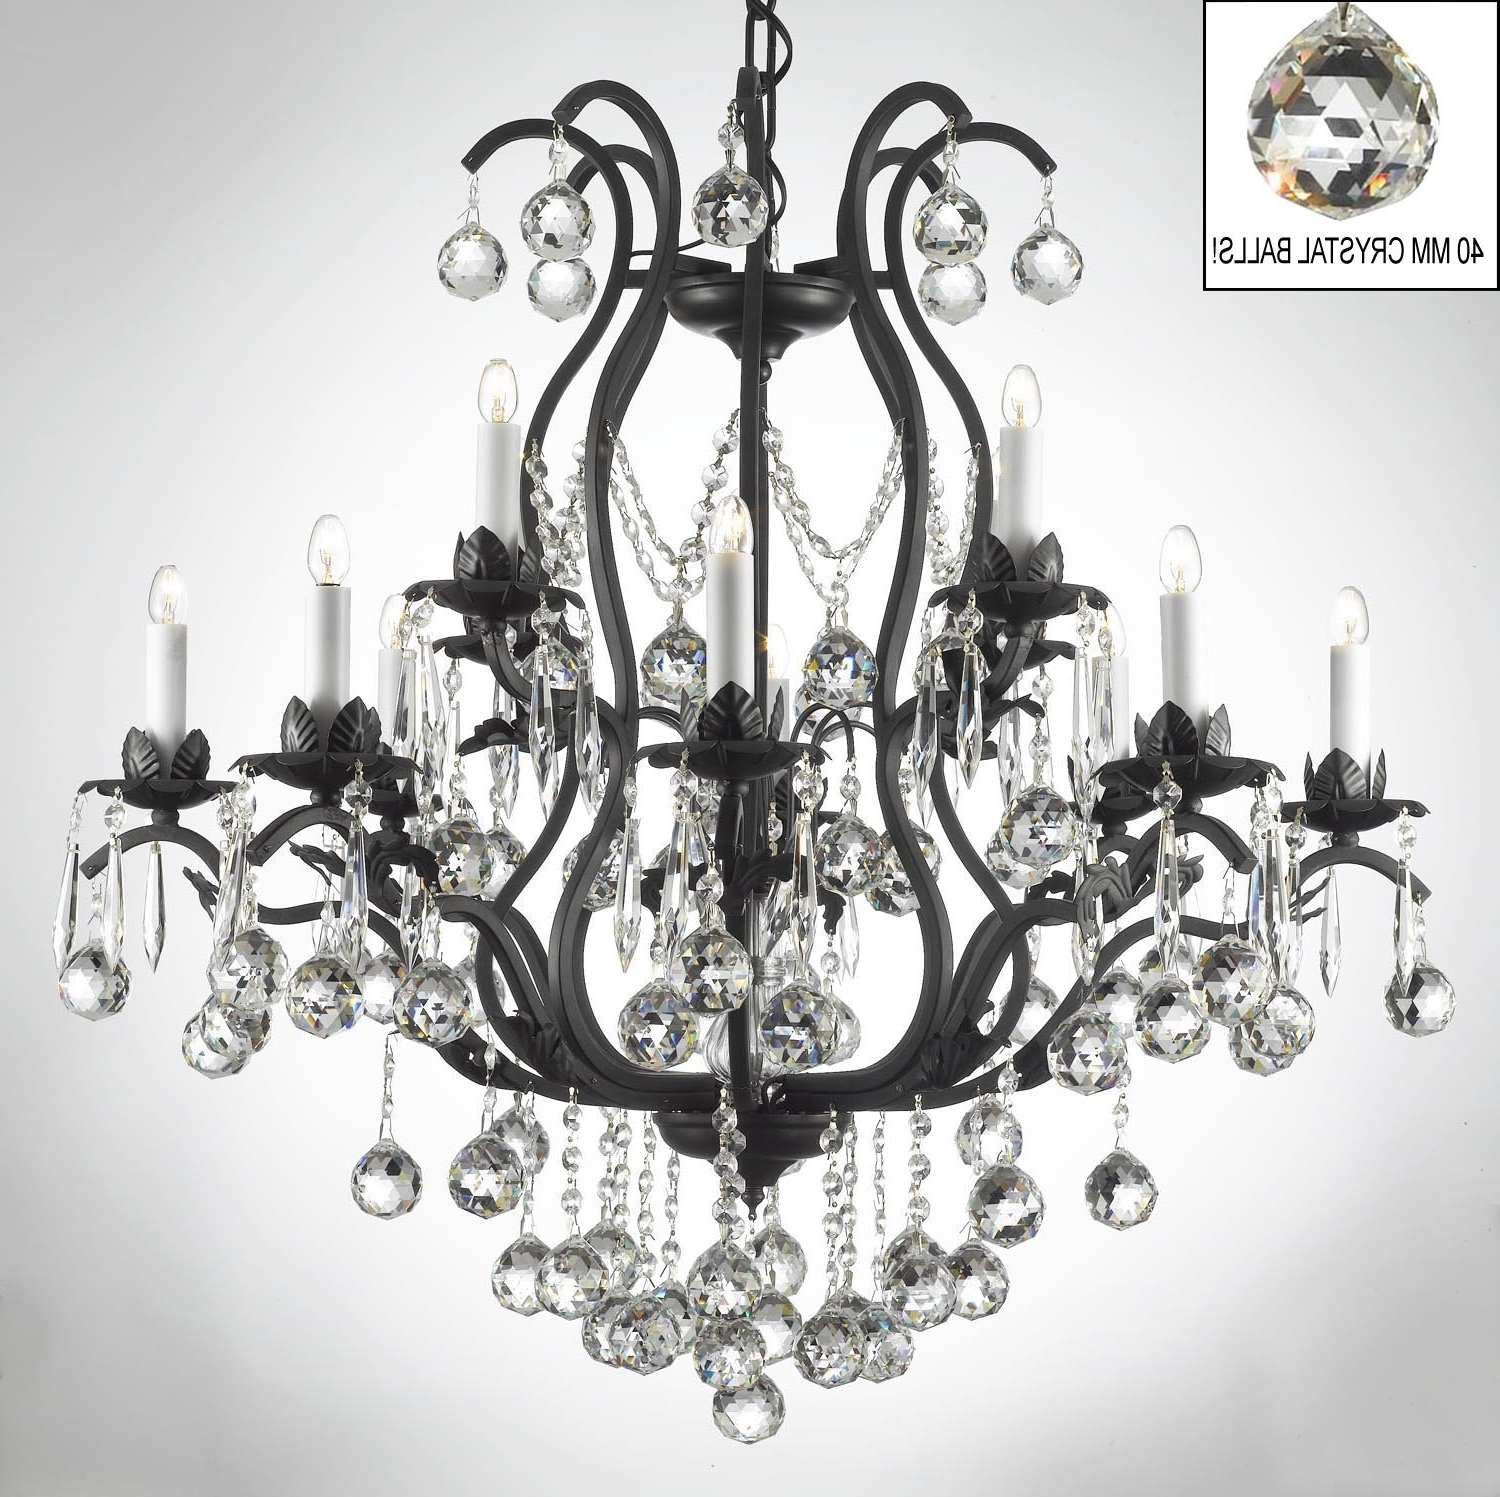 Metal Ball Candle Chandeliers For Popular Wrought Iron Candle Chandelier Chandeliers Black With Crystals Large (View 20 of 20)